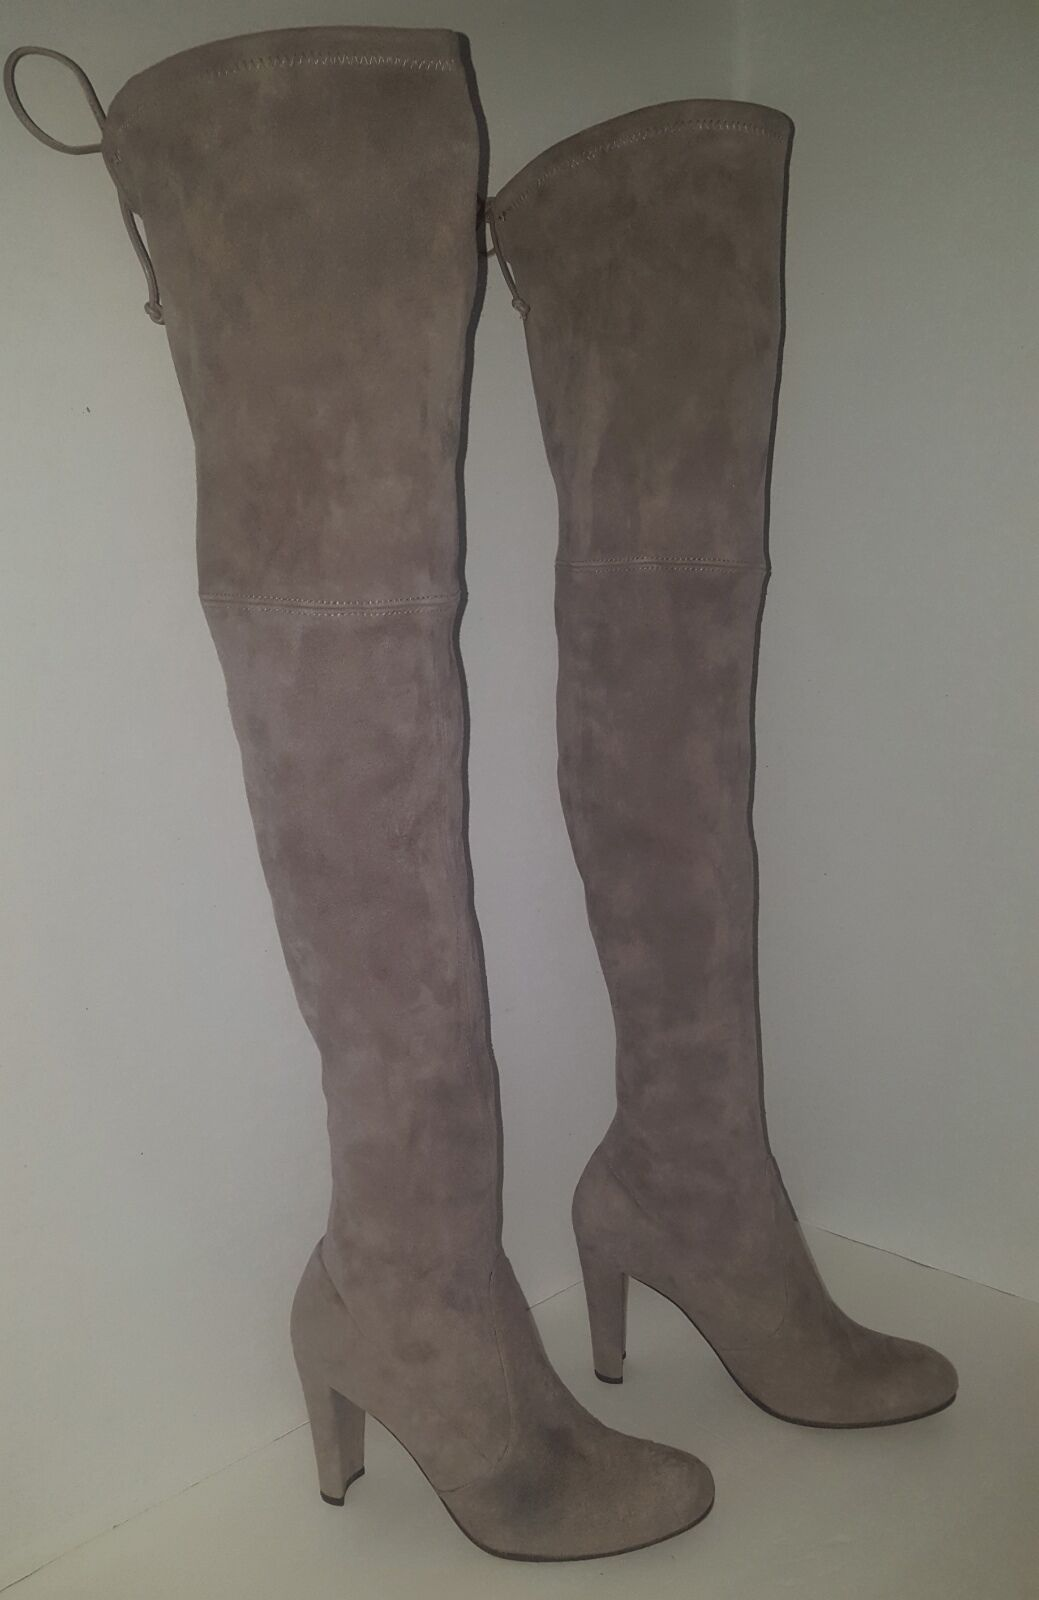 Stuart Weitzman Highland Over The Knee Topo (Taupe ) Stiefel Sz 8